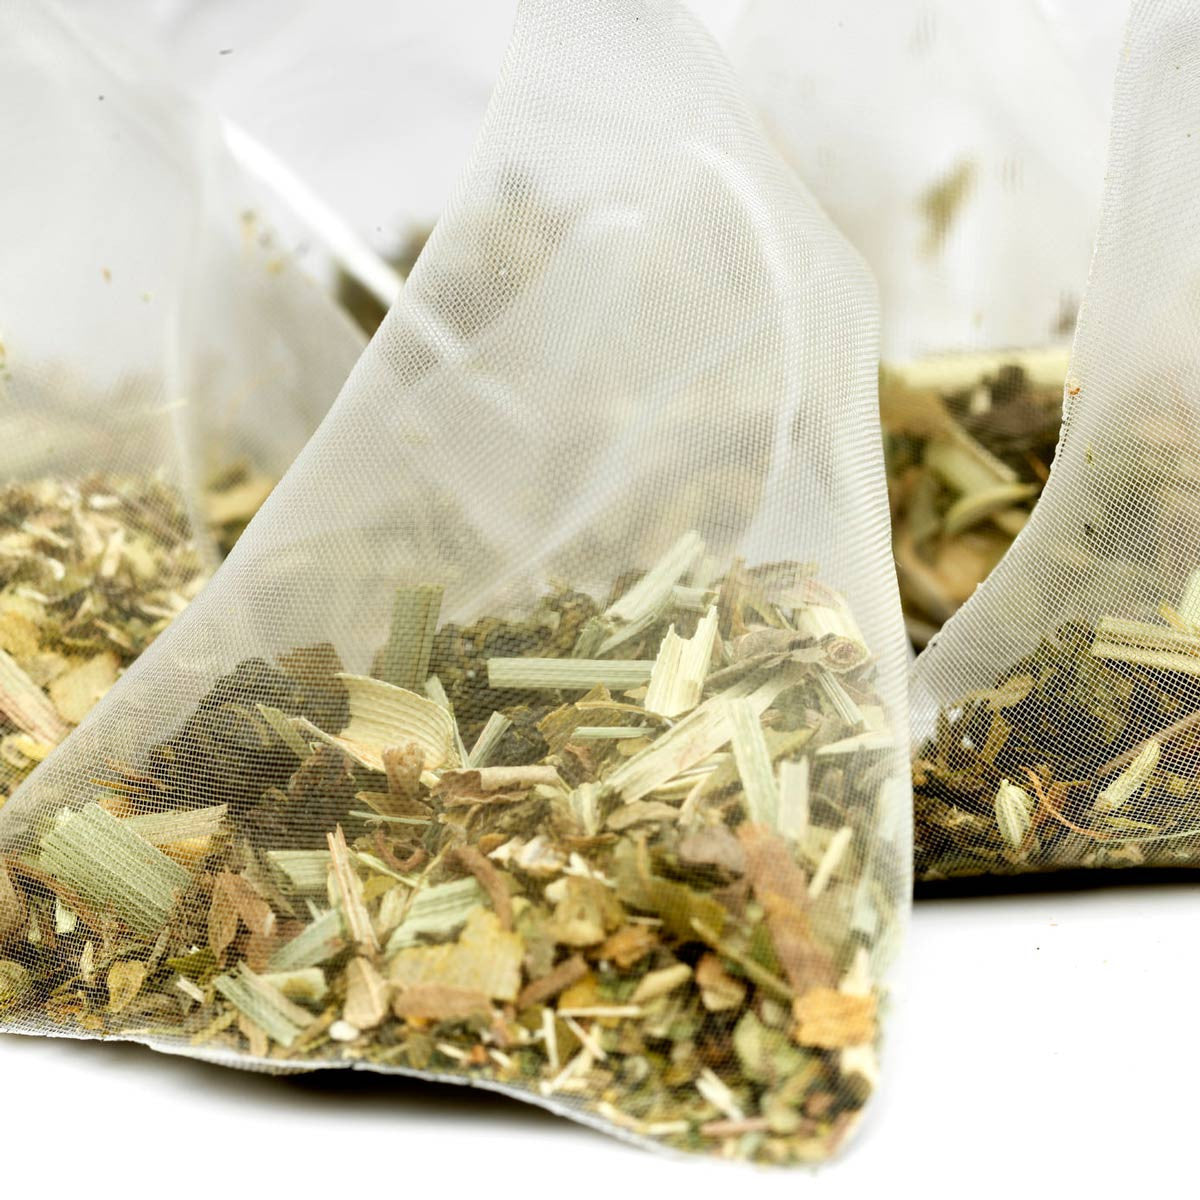 senna-free herbal tea